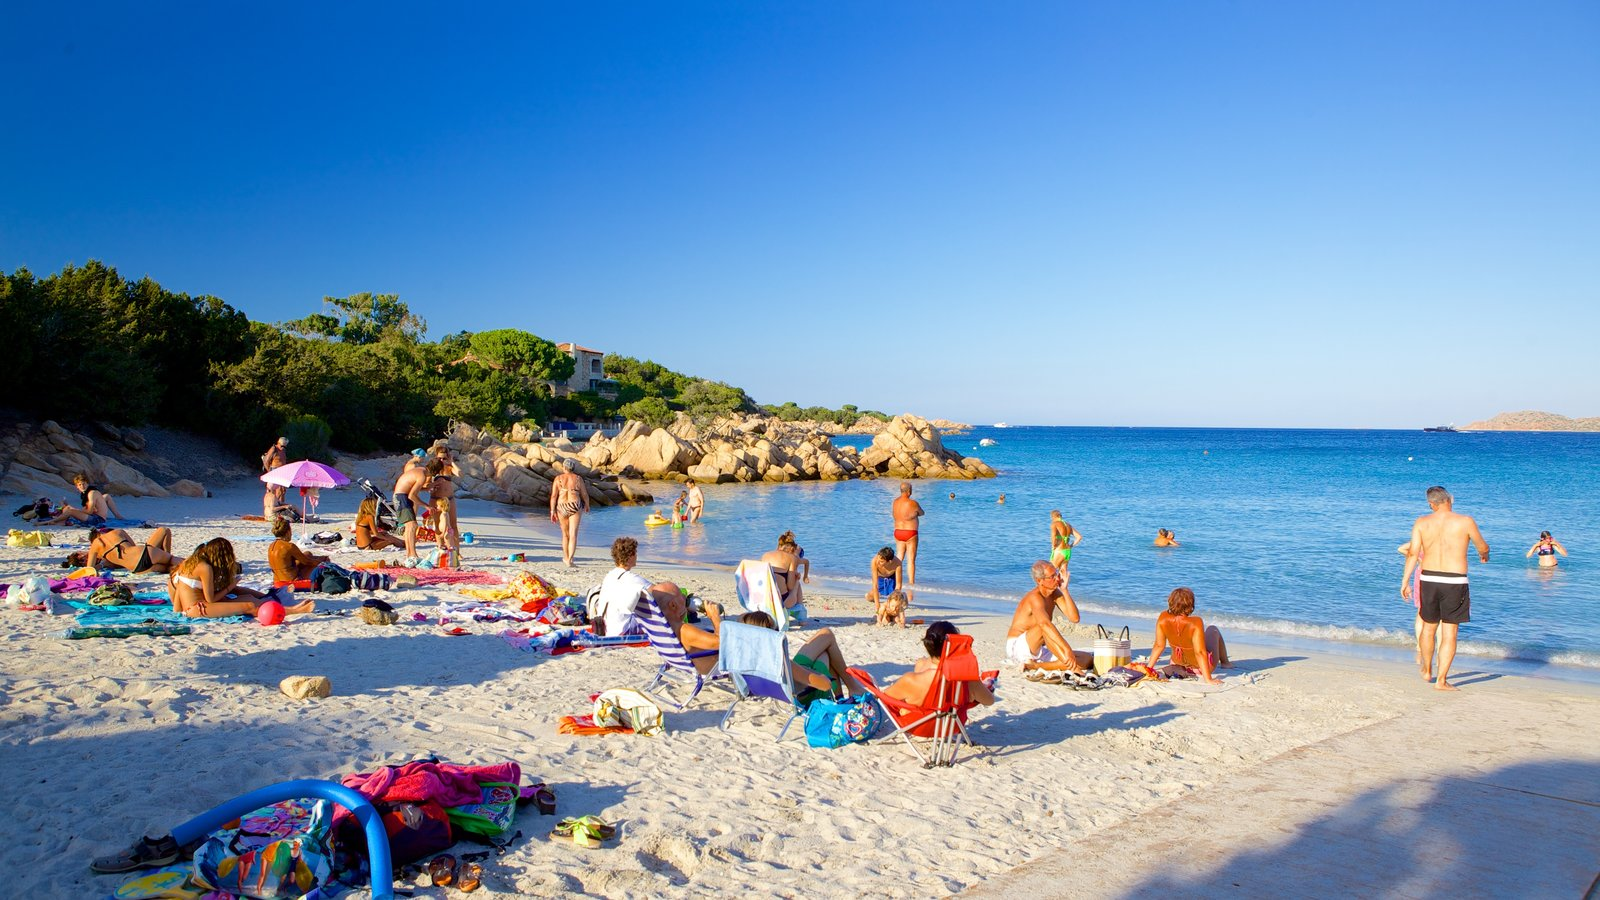 Capriccioli Beach which includes tropical scenes, a beach and a coastal town